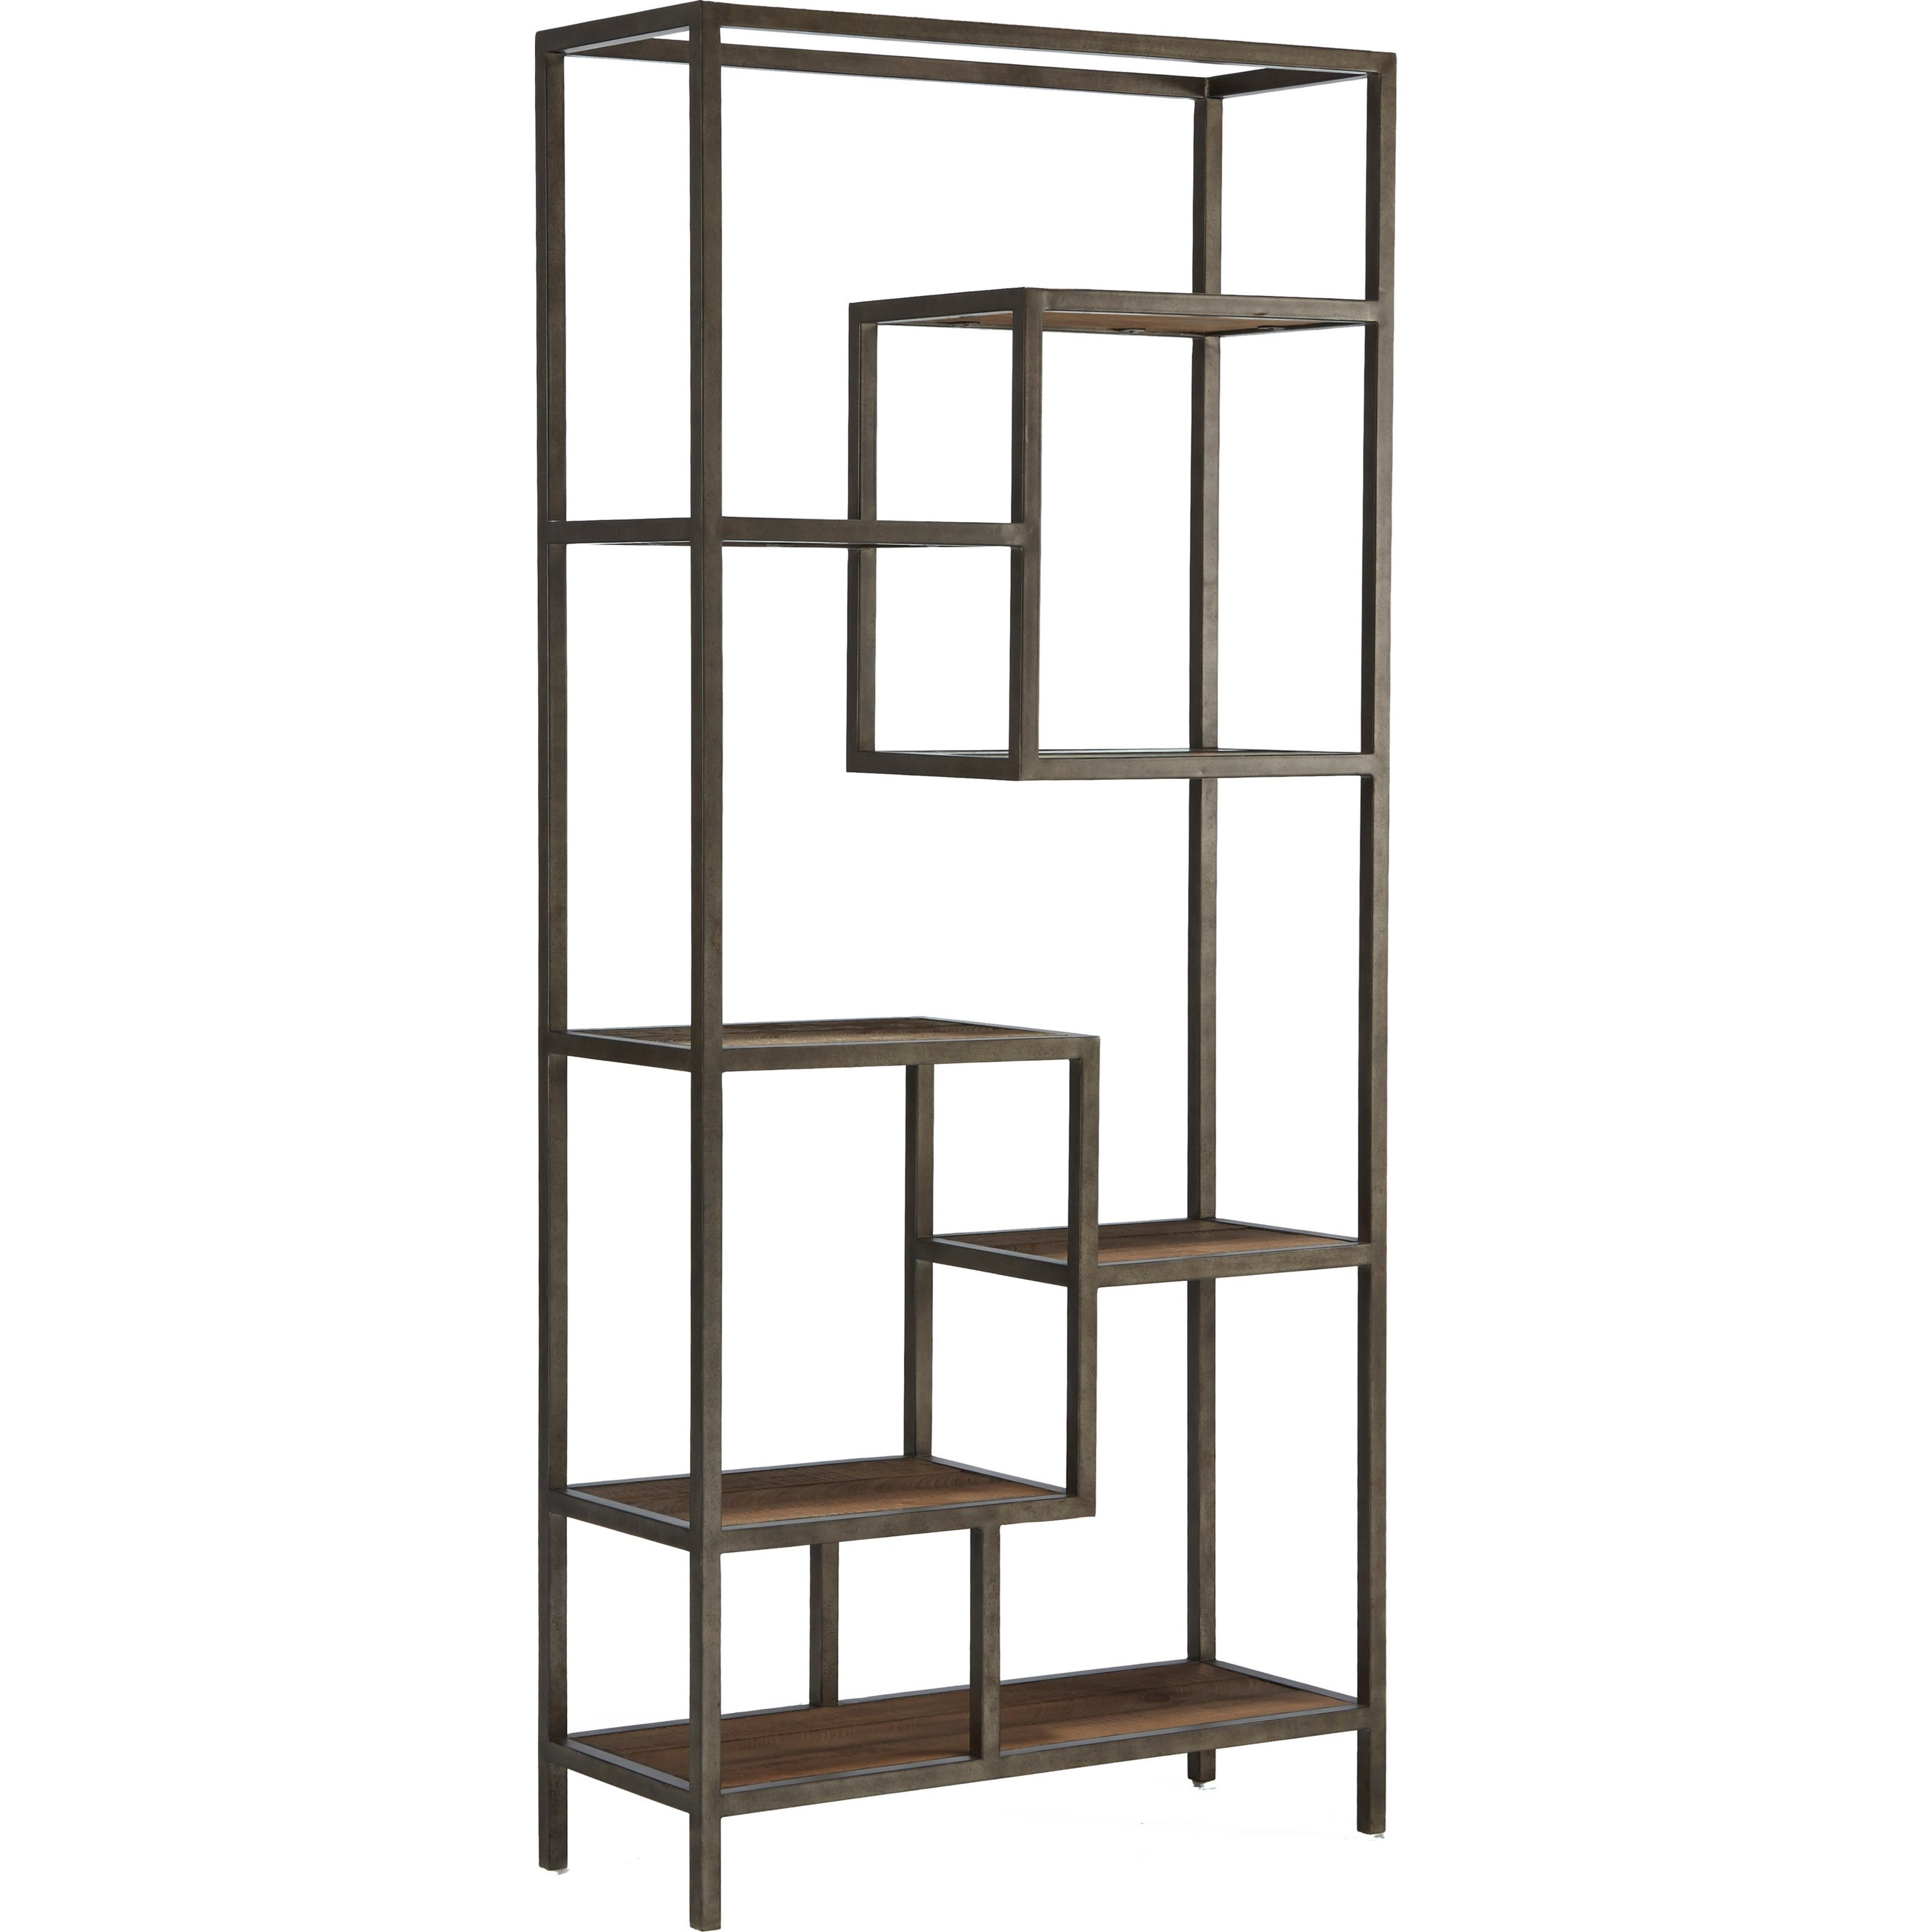 Broyhill Furniture Bedford Avenue Rutledge Street Step Shelf Etagere - Item Number: 8615-022